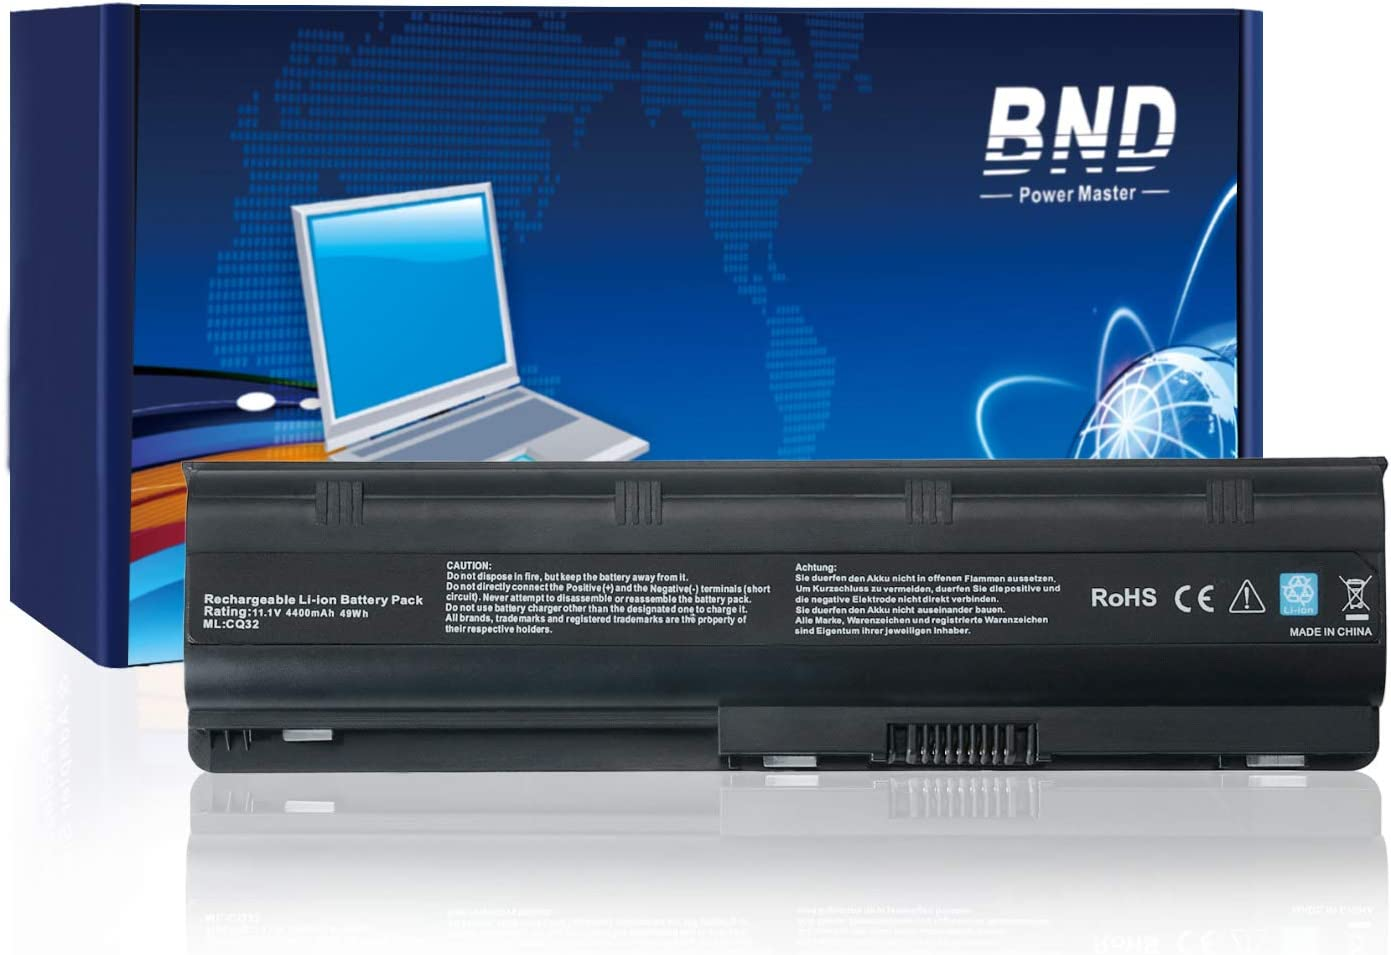 BND 593553-001 Laptop Battery Compatible with HP 593554-001 MU06 MU09 636631-001 WD548AA 586006-321 593550-001 593562-001 HSTNN-LB0W HSTNN-UB0W HSTNN-CBOW - [6-Cell 4400mAh/49Wh]